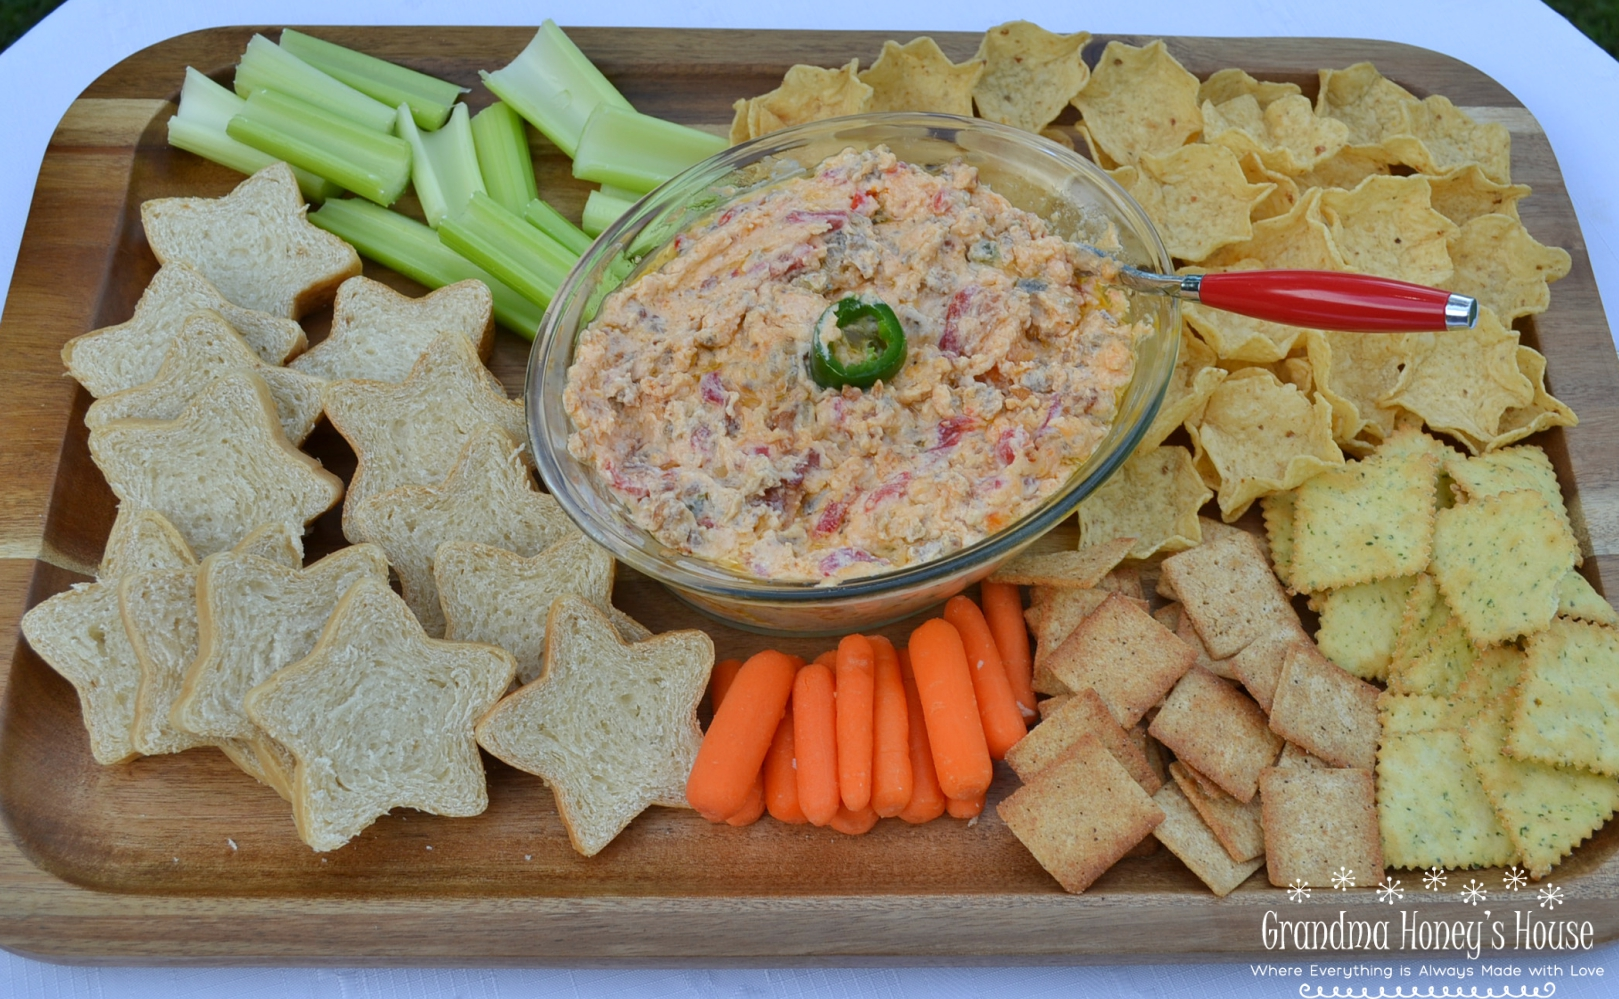 This Hot Pimento-Sausage Dip is perfect for any party. This dip has a pimento cheese base, with bacon, jalapenos, and sausage added. Perfect with chips, crackers,bread, or veggies.